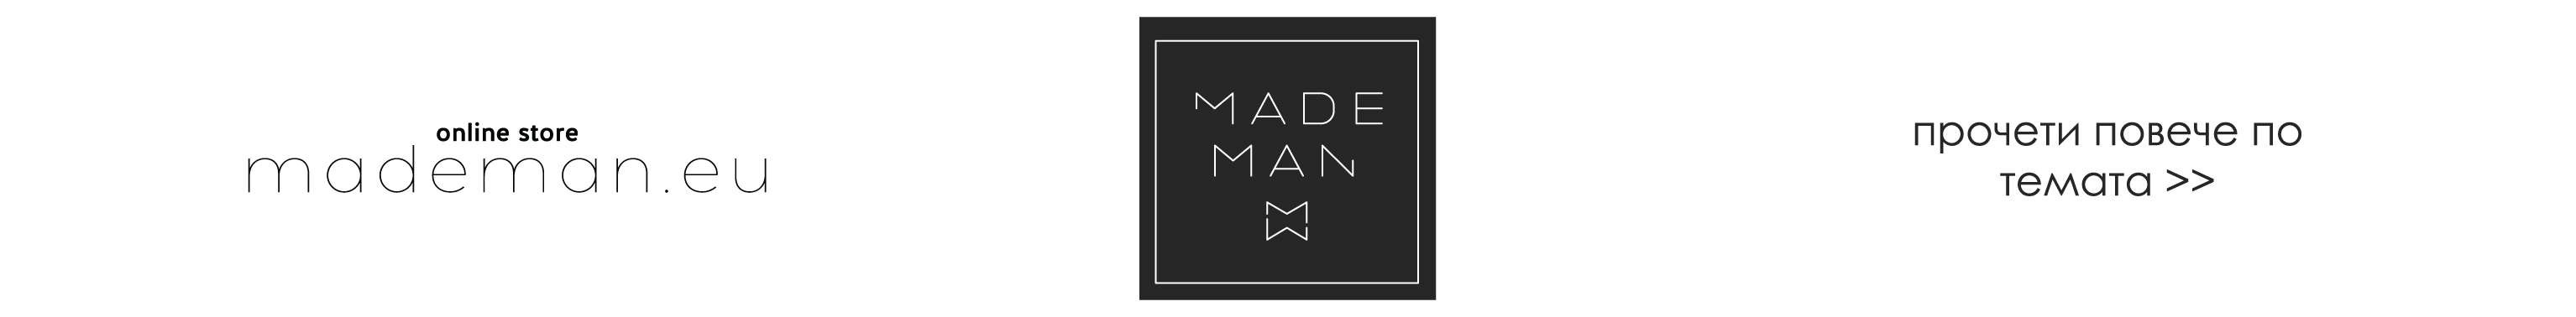 MADEMAN.EU blog